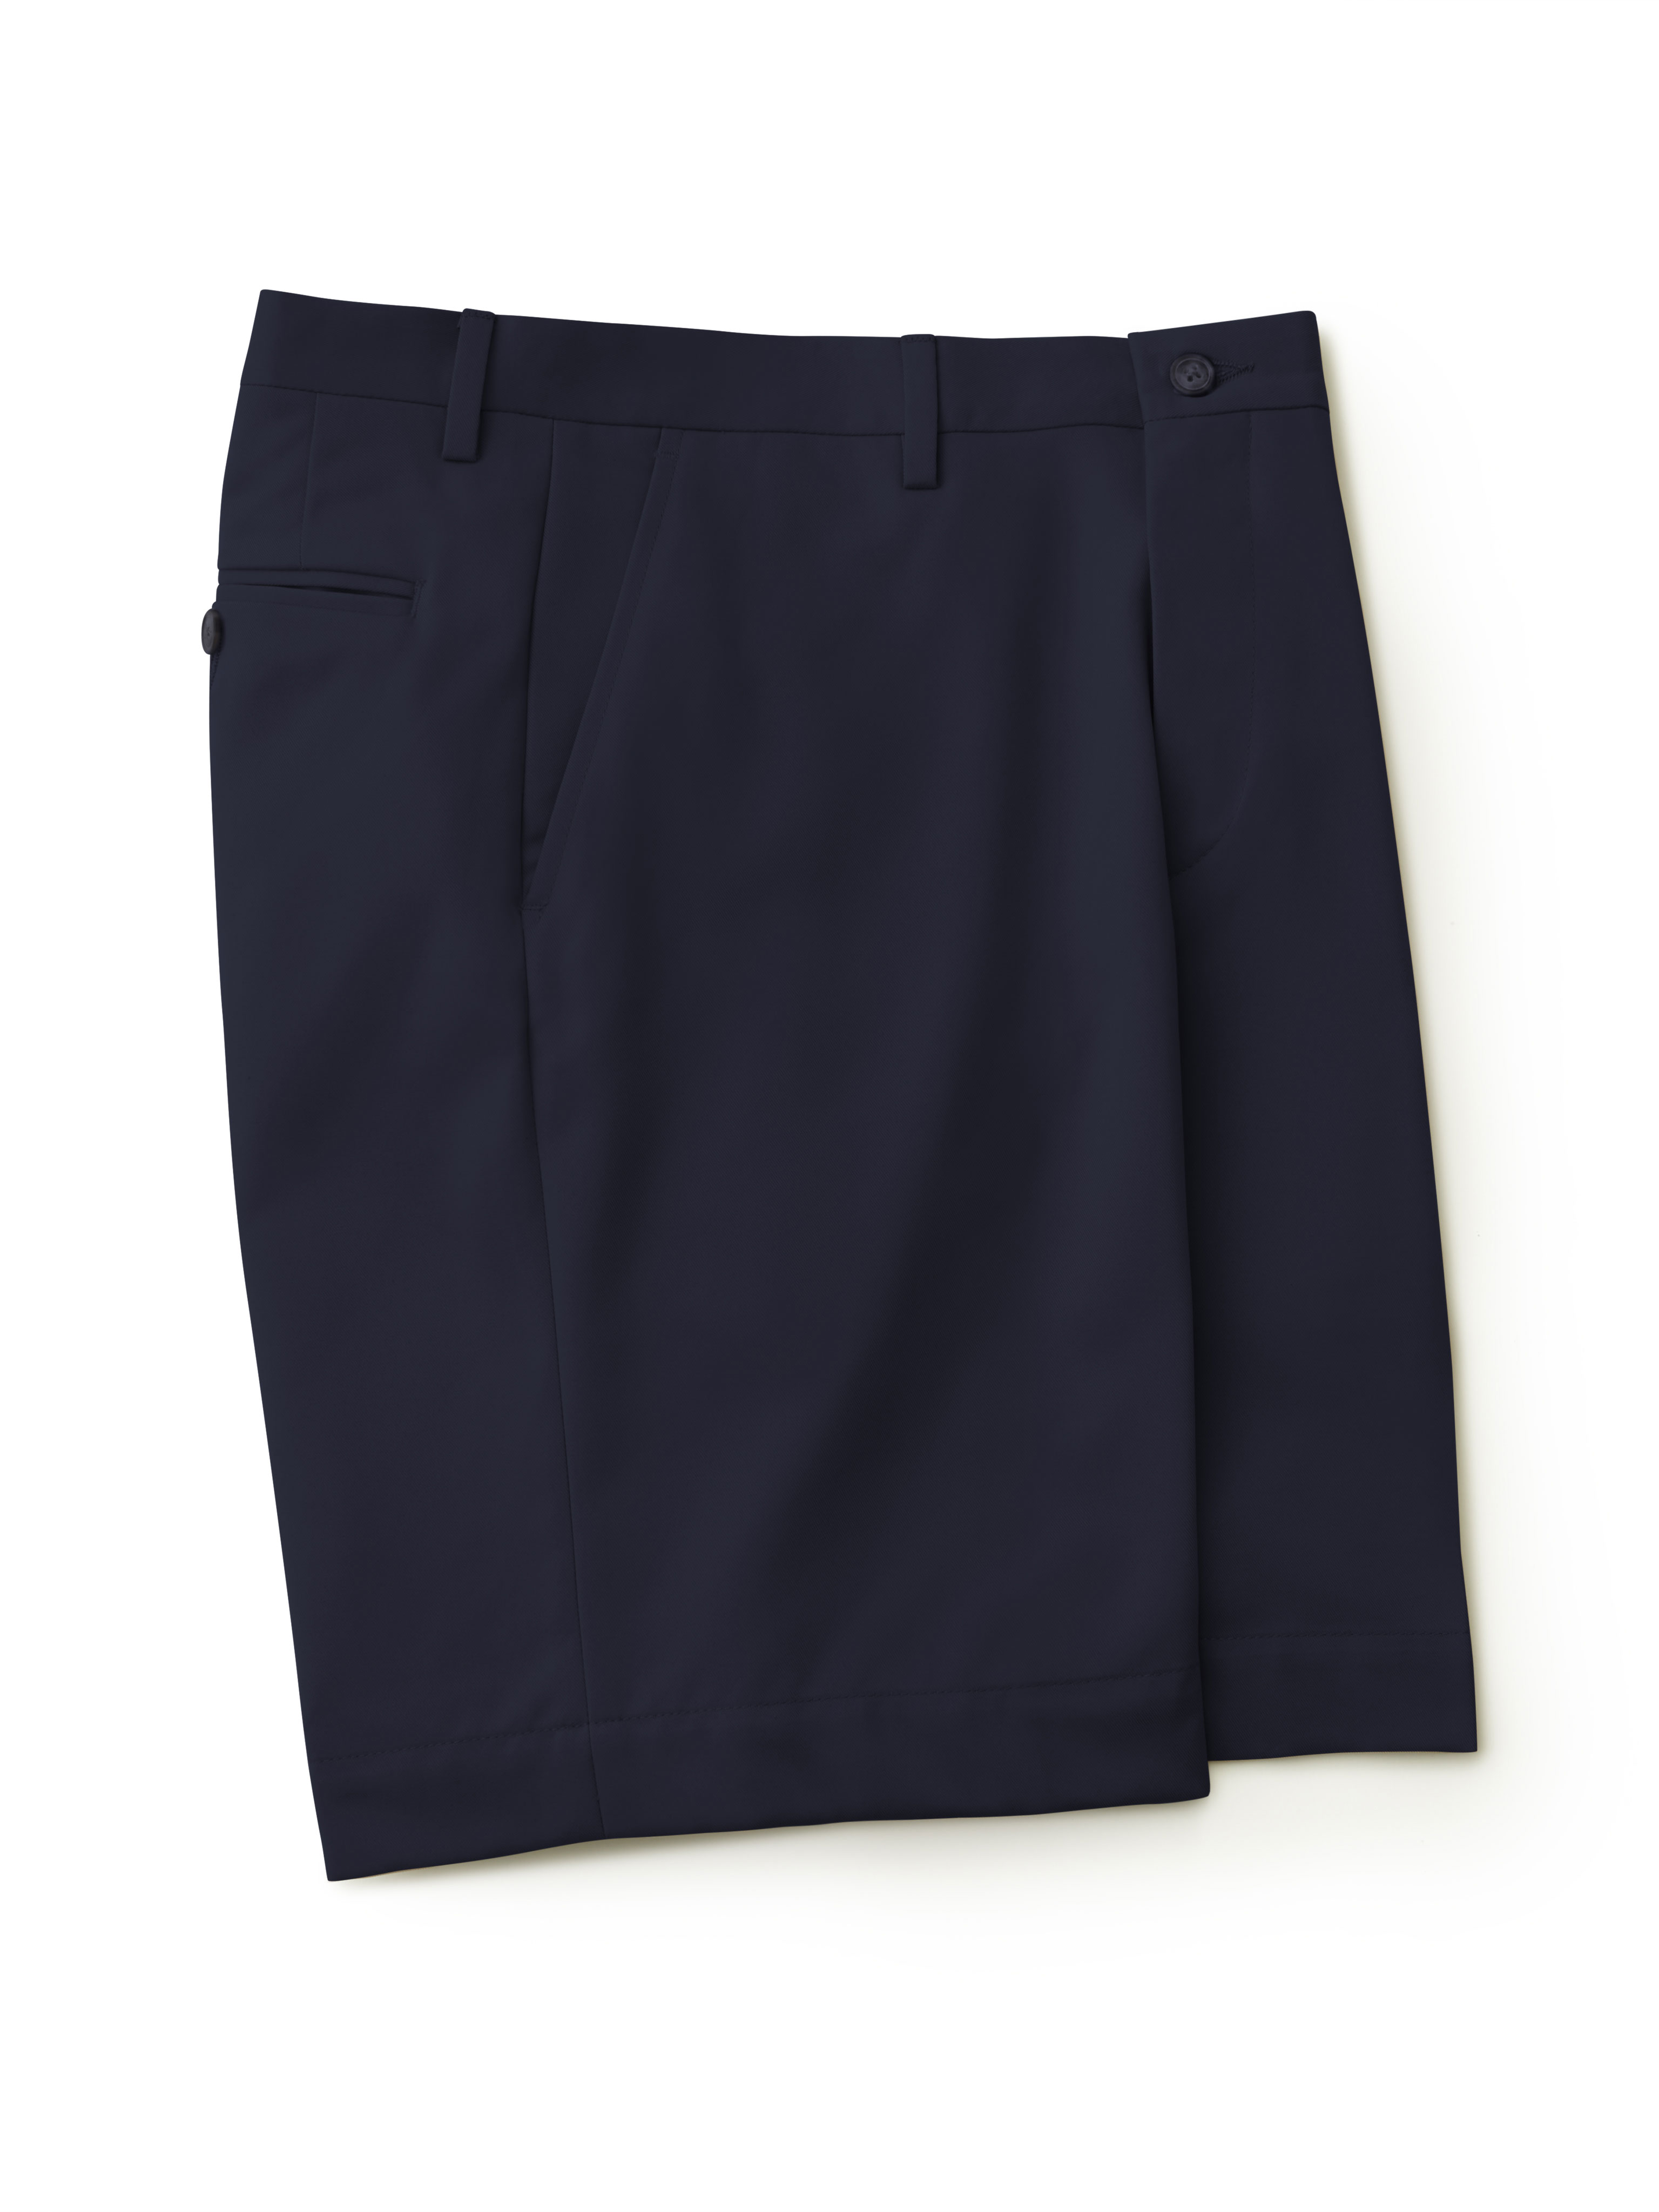 Shorts by Tom James